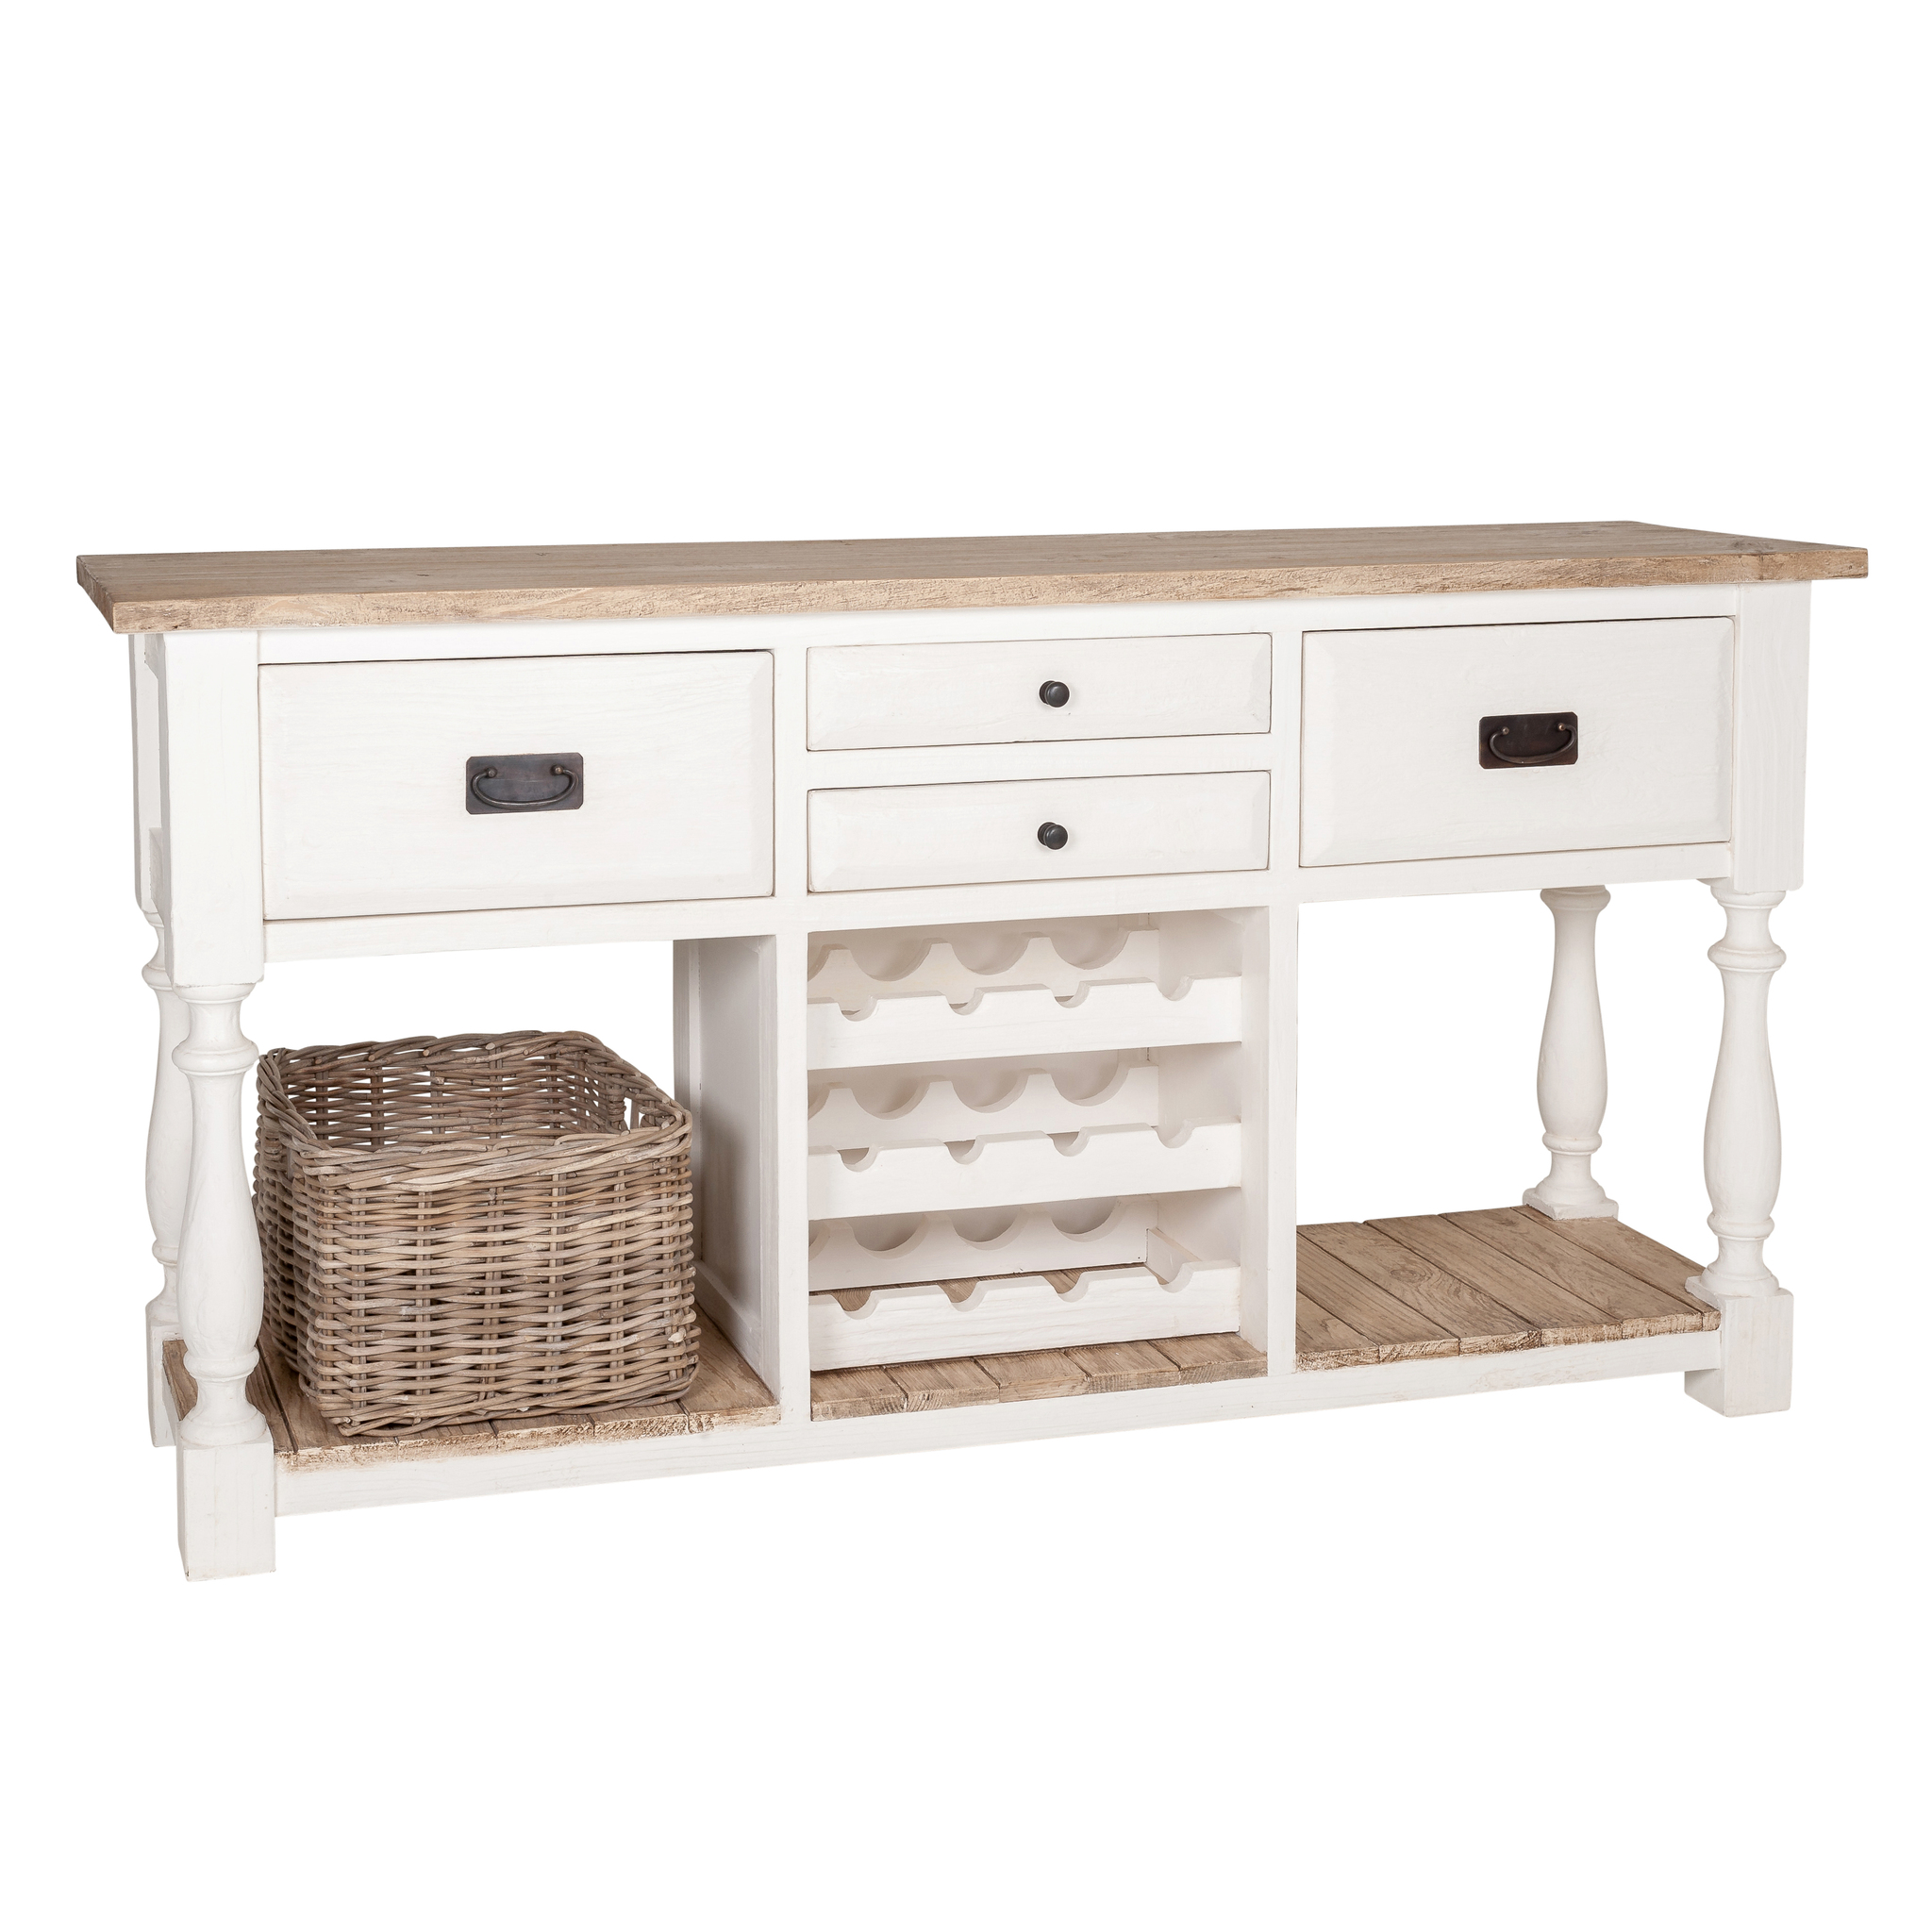 Chauncey Vintage Kitchen Sideboard With Wine Rack Drawer ...